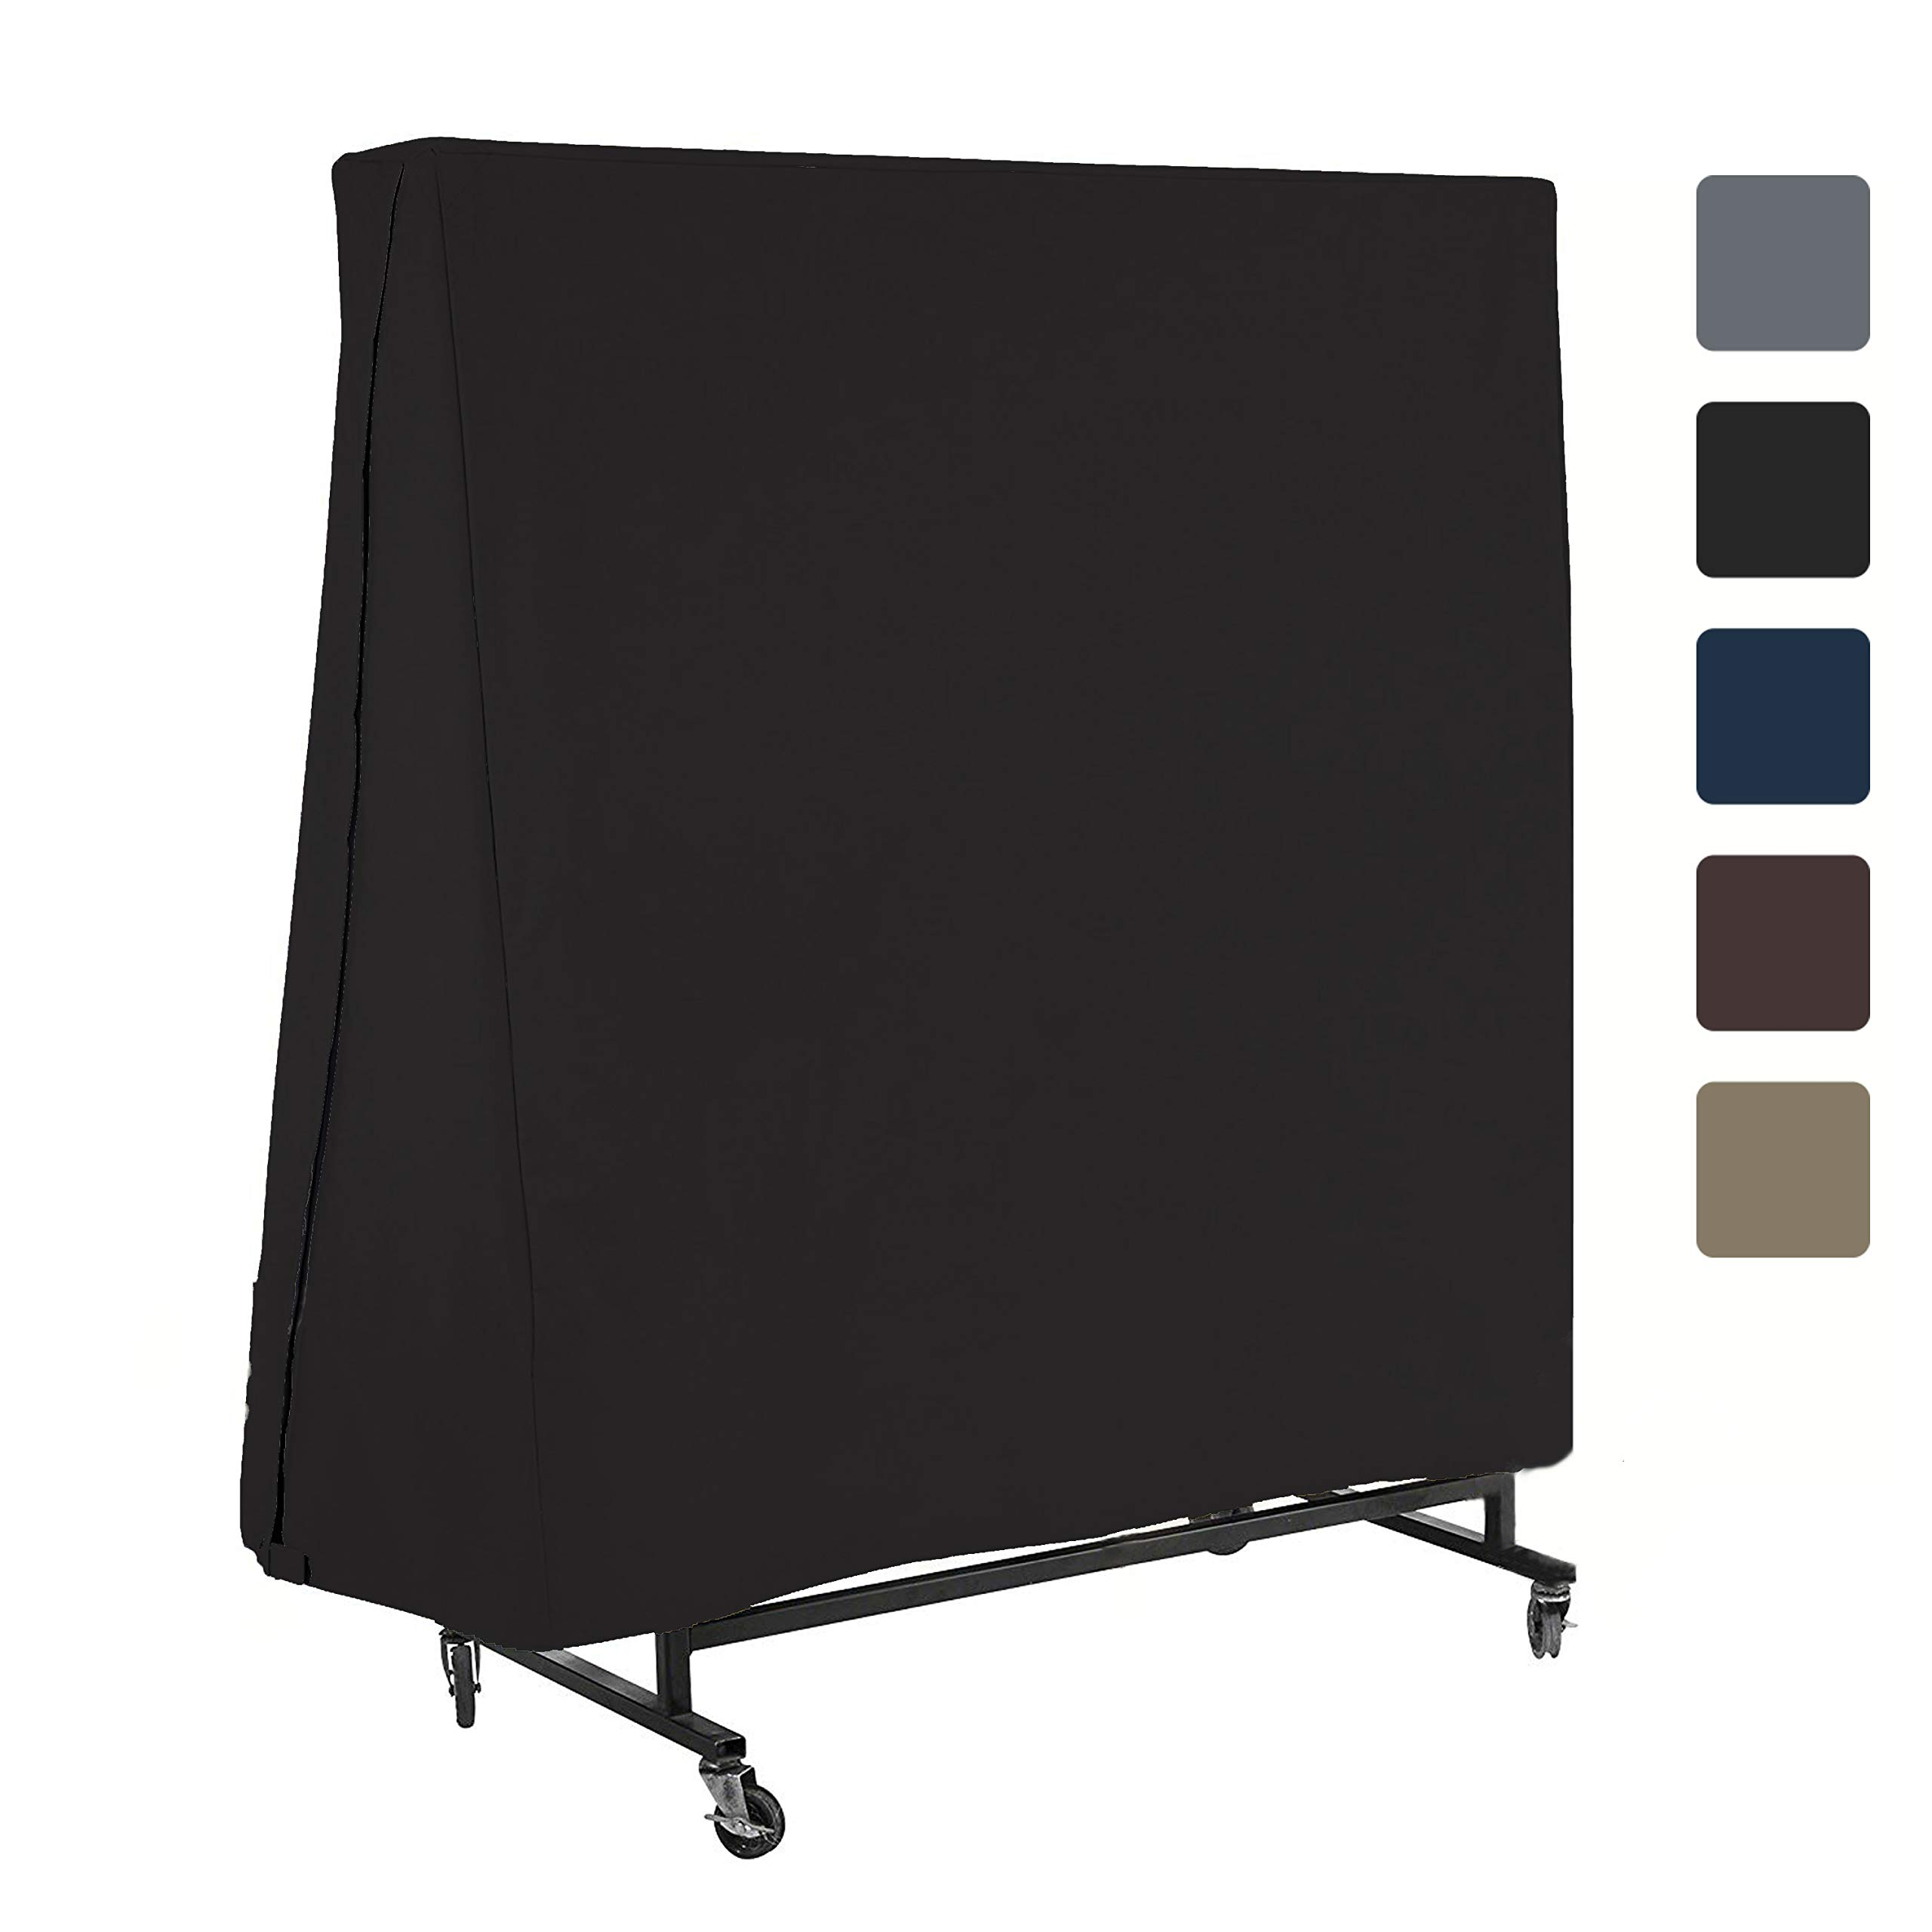 Ping Pong Table Cover for Indoor / Outdoor - Waterproof & UV Resistant Table Tennis Cover 12 Oz PVC Heavy Duty Fabric with Air Pockets & Drawstring for Snug Fit to With Stand Winds & Storms (Black)